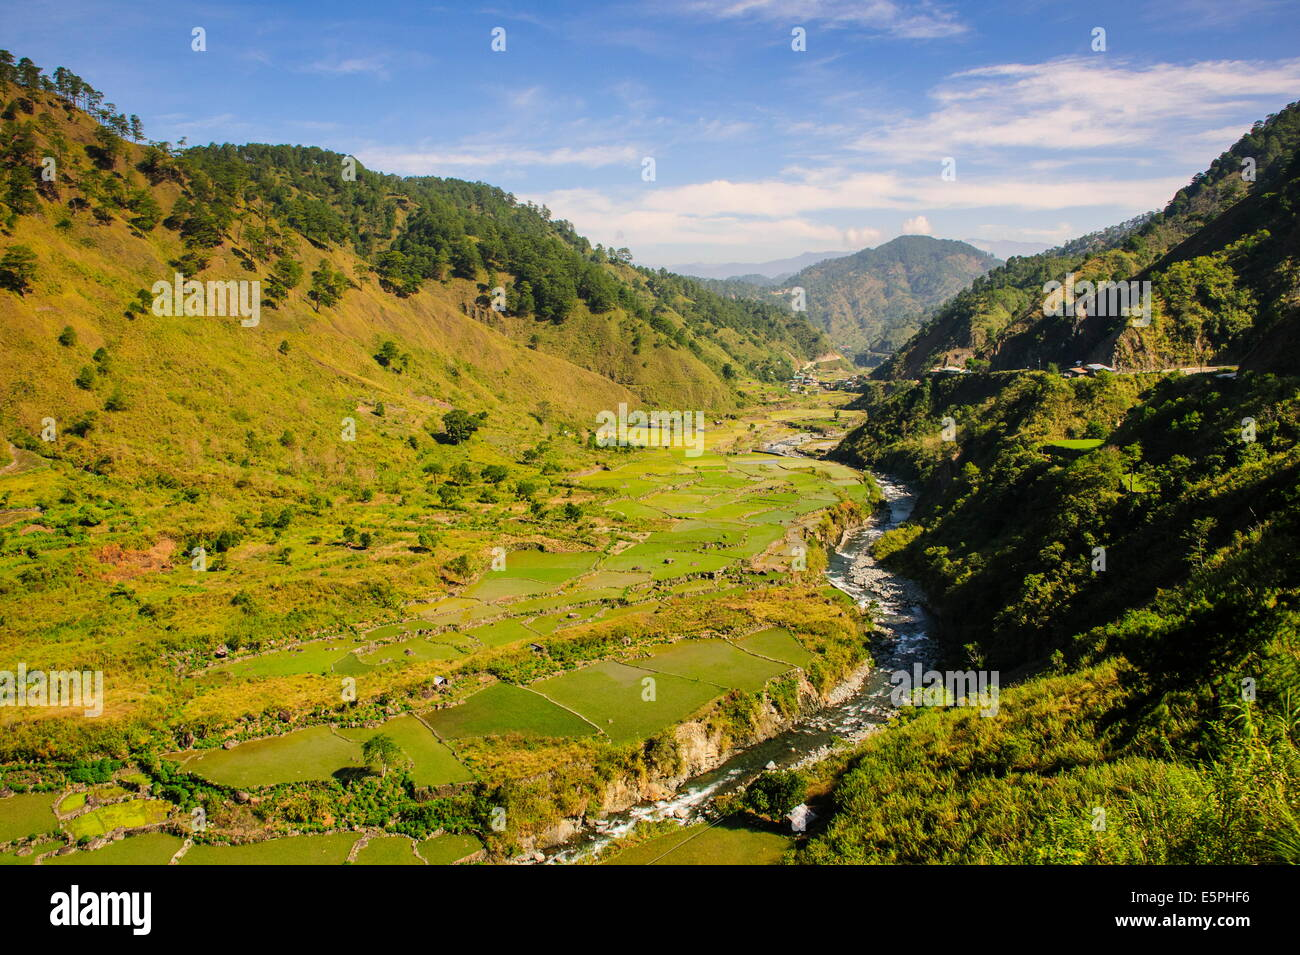 Along the rice terraces from Bontoc to Banaue, Luzon, Philippines, Southeast Asia, Asia - Stock Image